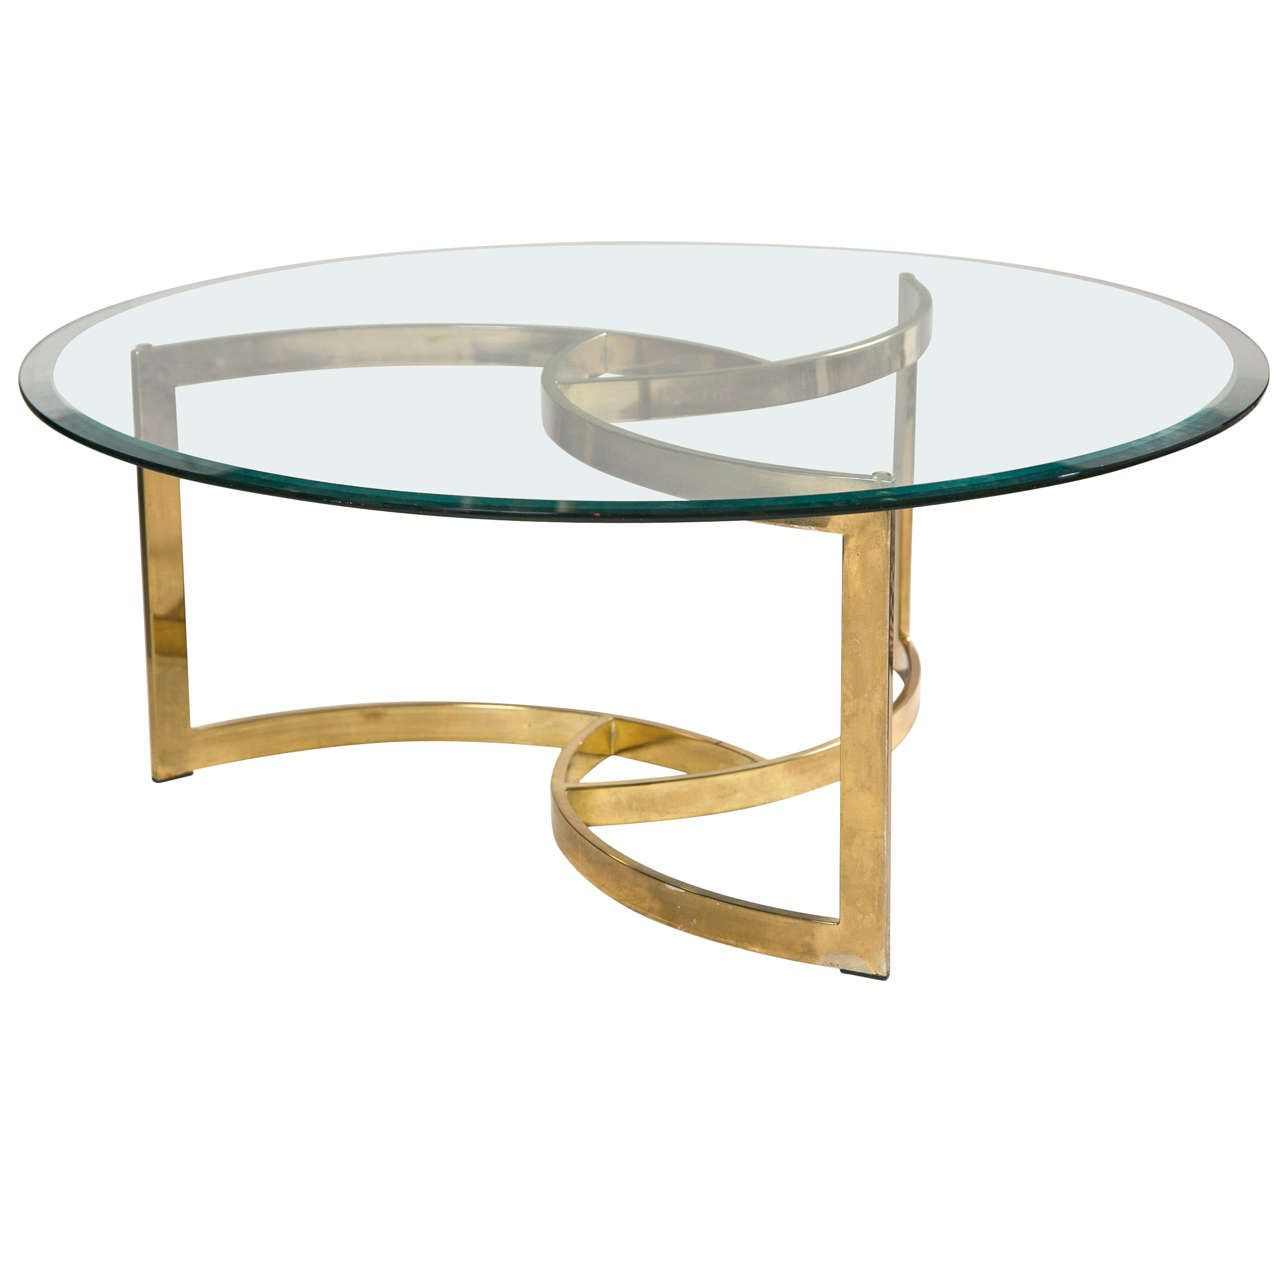 Round Glass Top Table With Golden Base Made From Metal